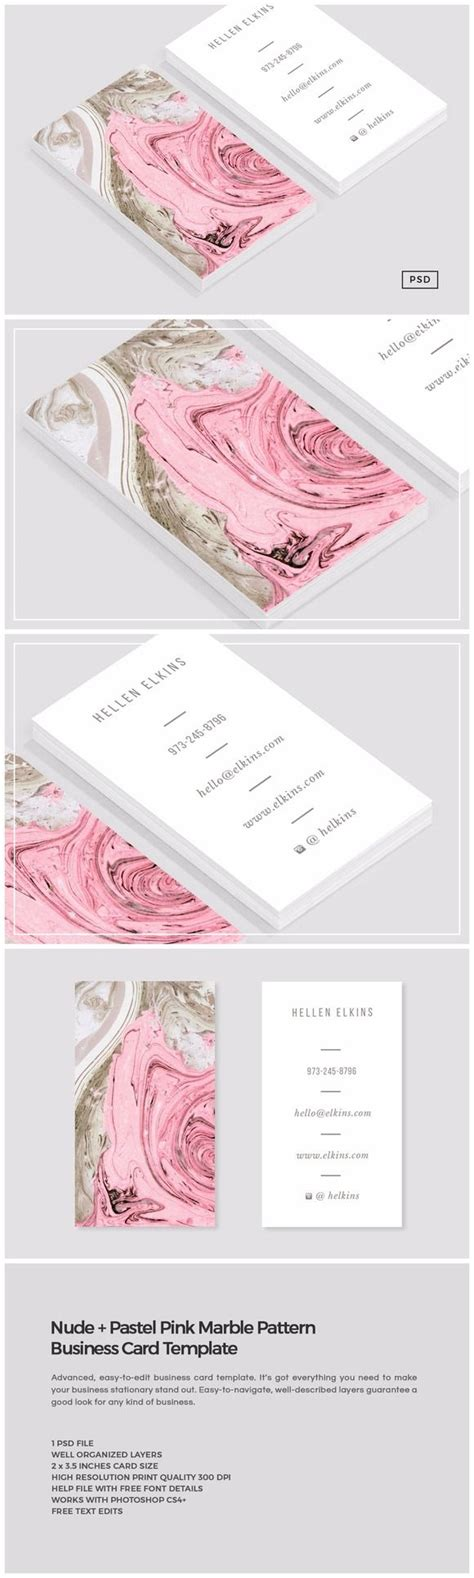 4over business card templat pink marble business card business card design